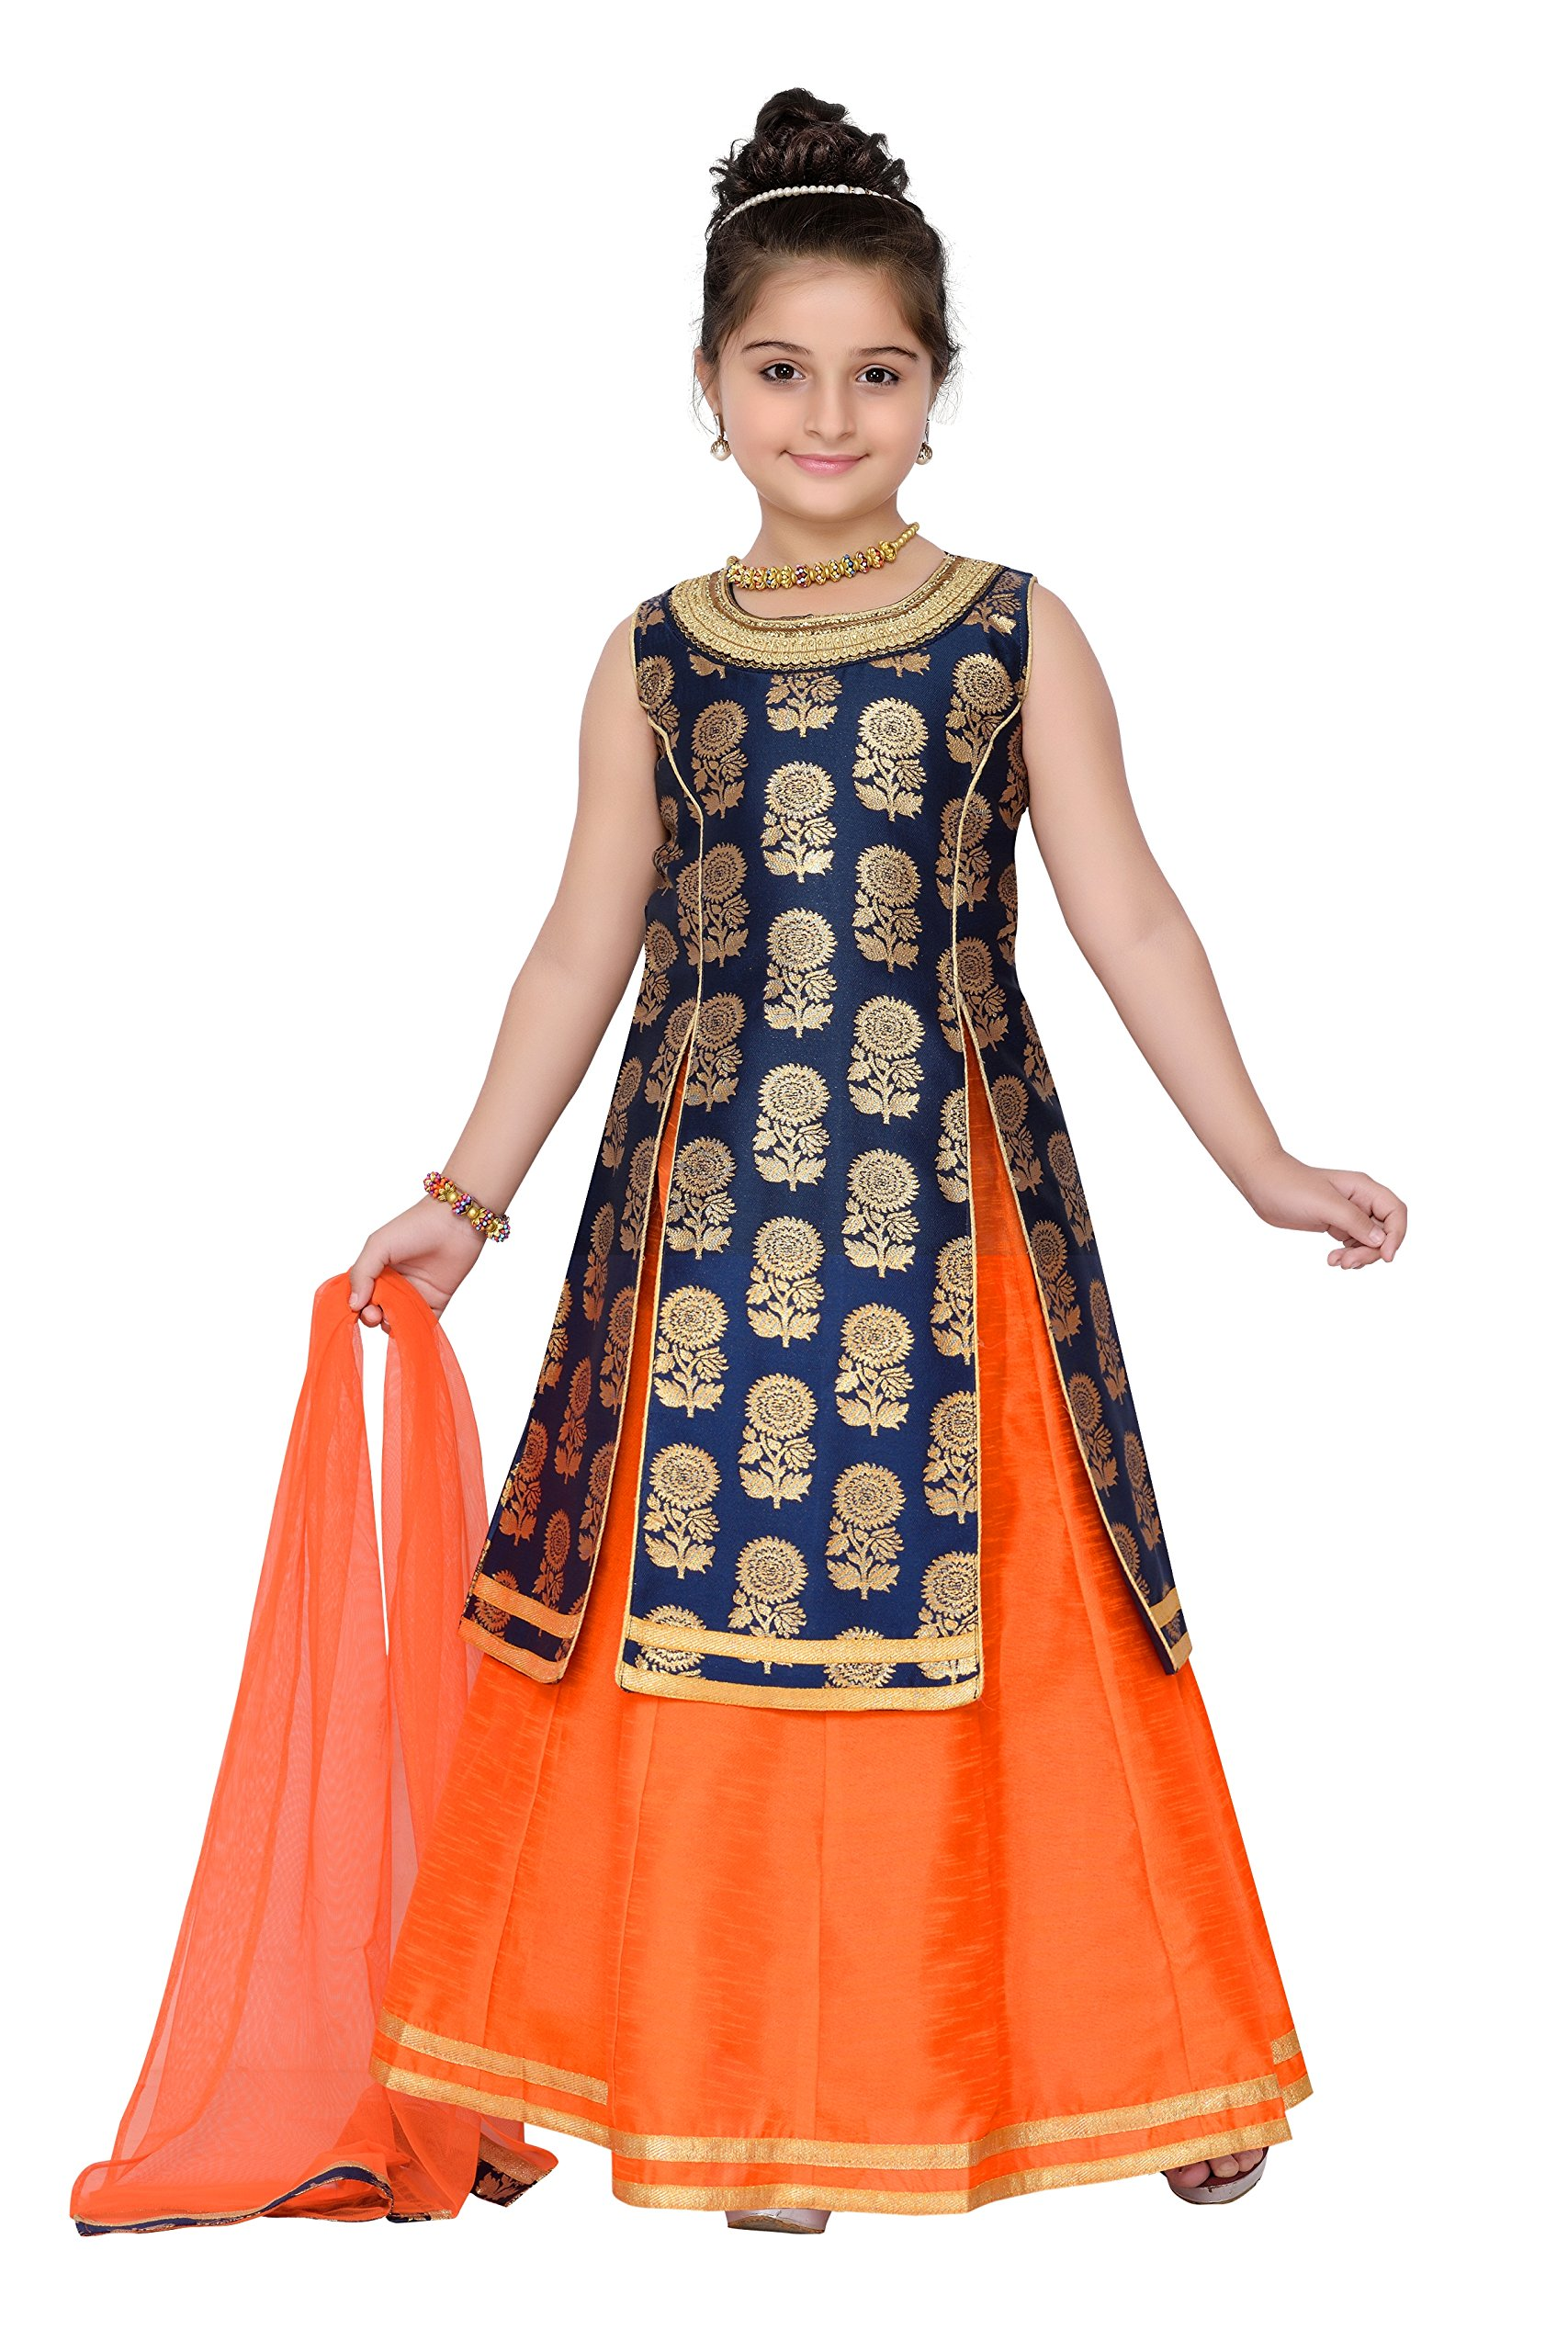 36860df9fd7 Indian Party Wear Dresses For Kids - Data Dynamic AG